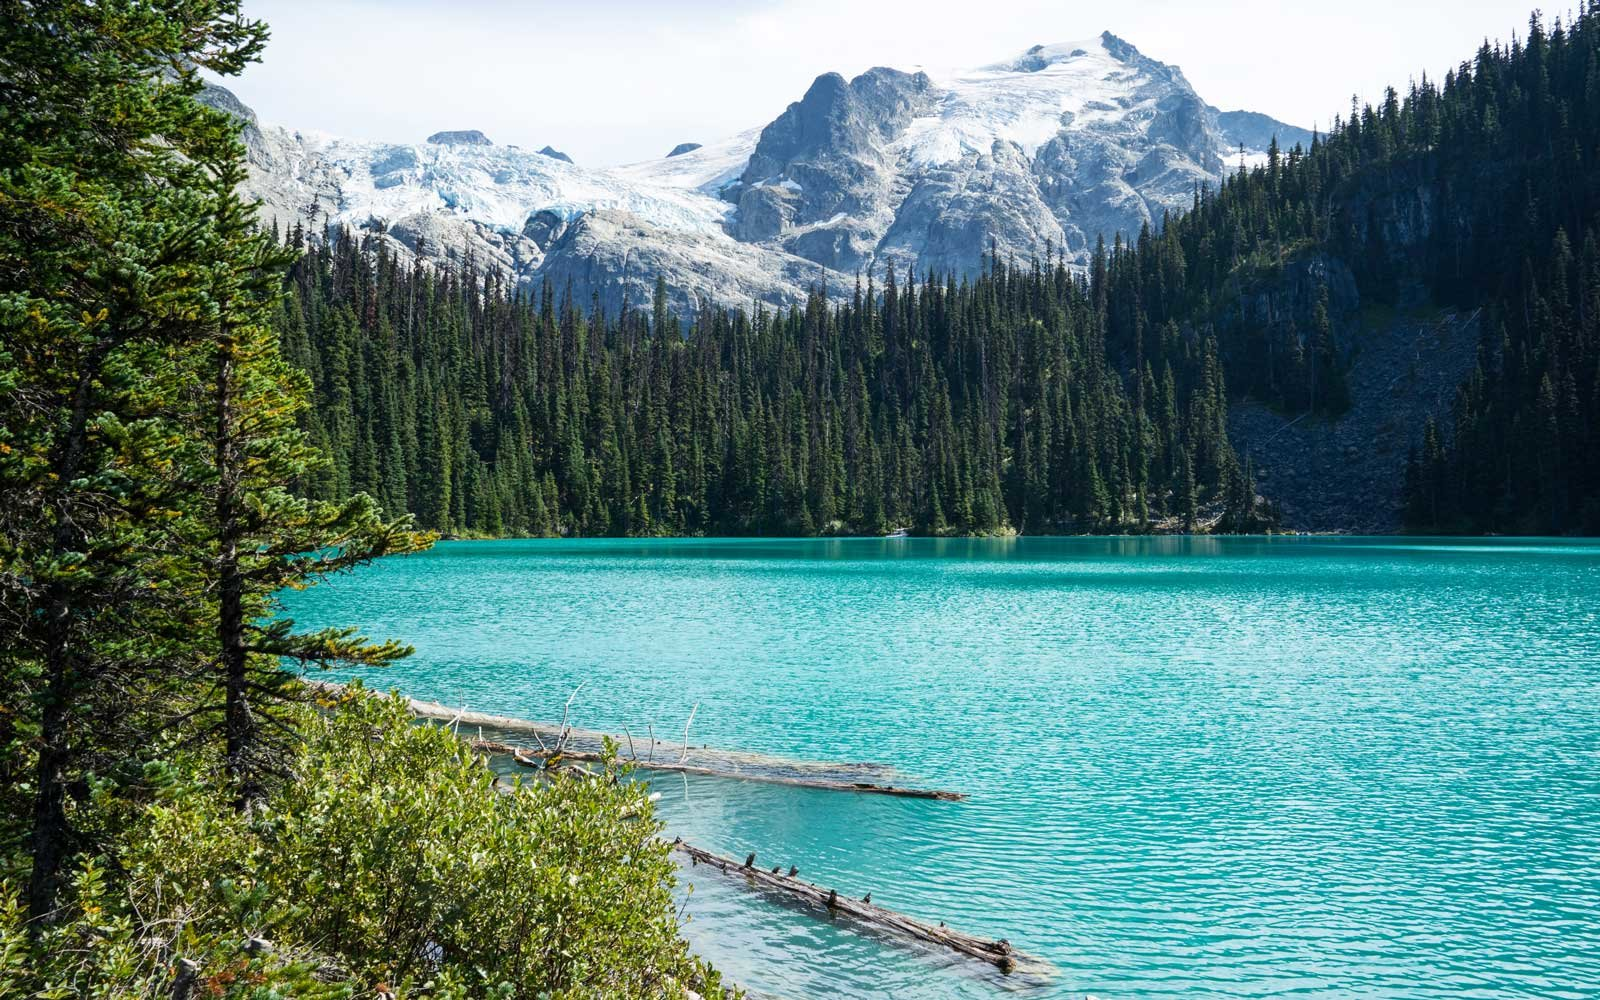 Clear blue waters of Joffre Lake in British Columbia, Canada